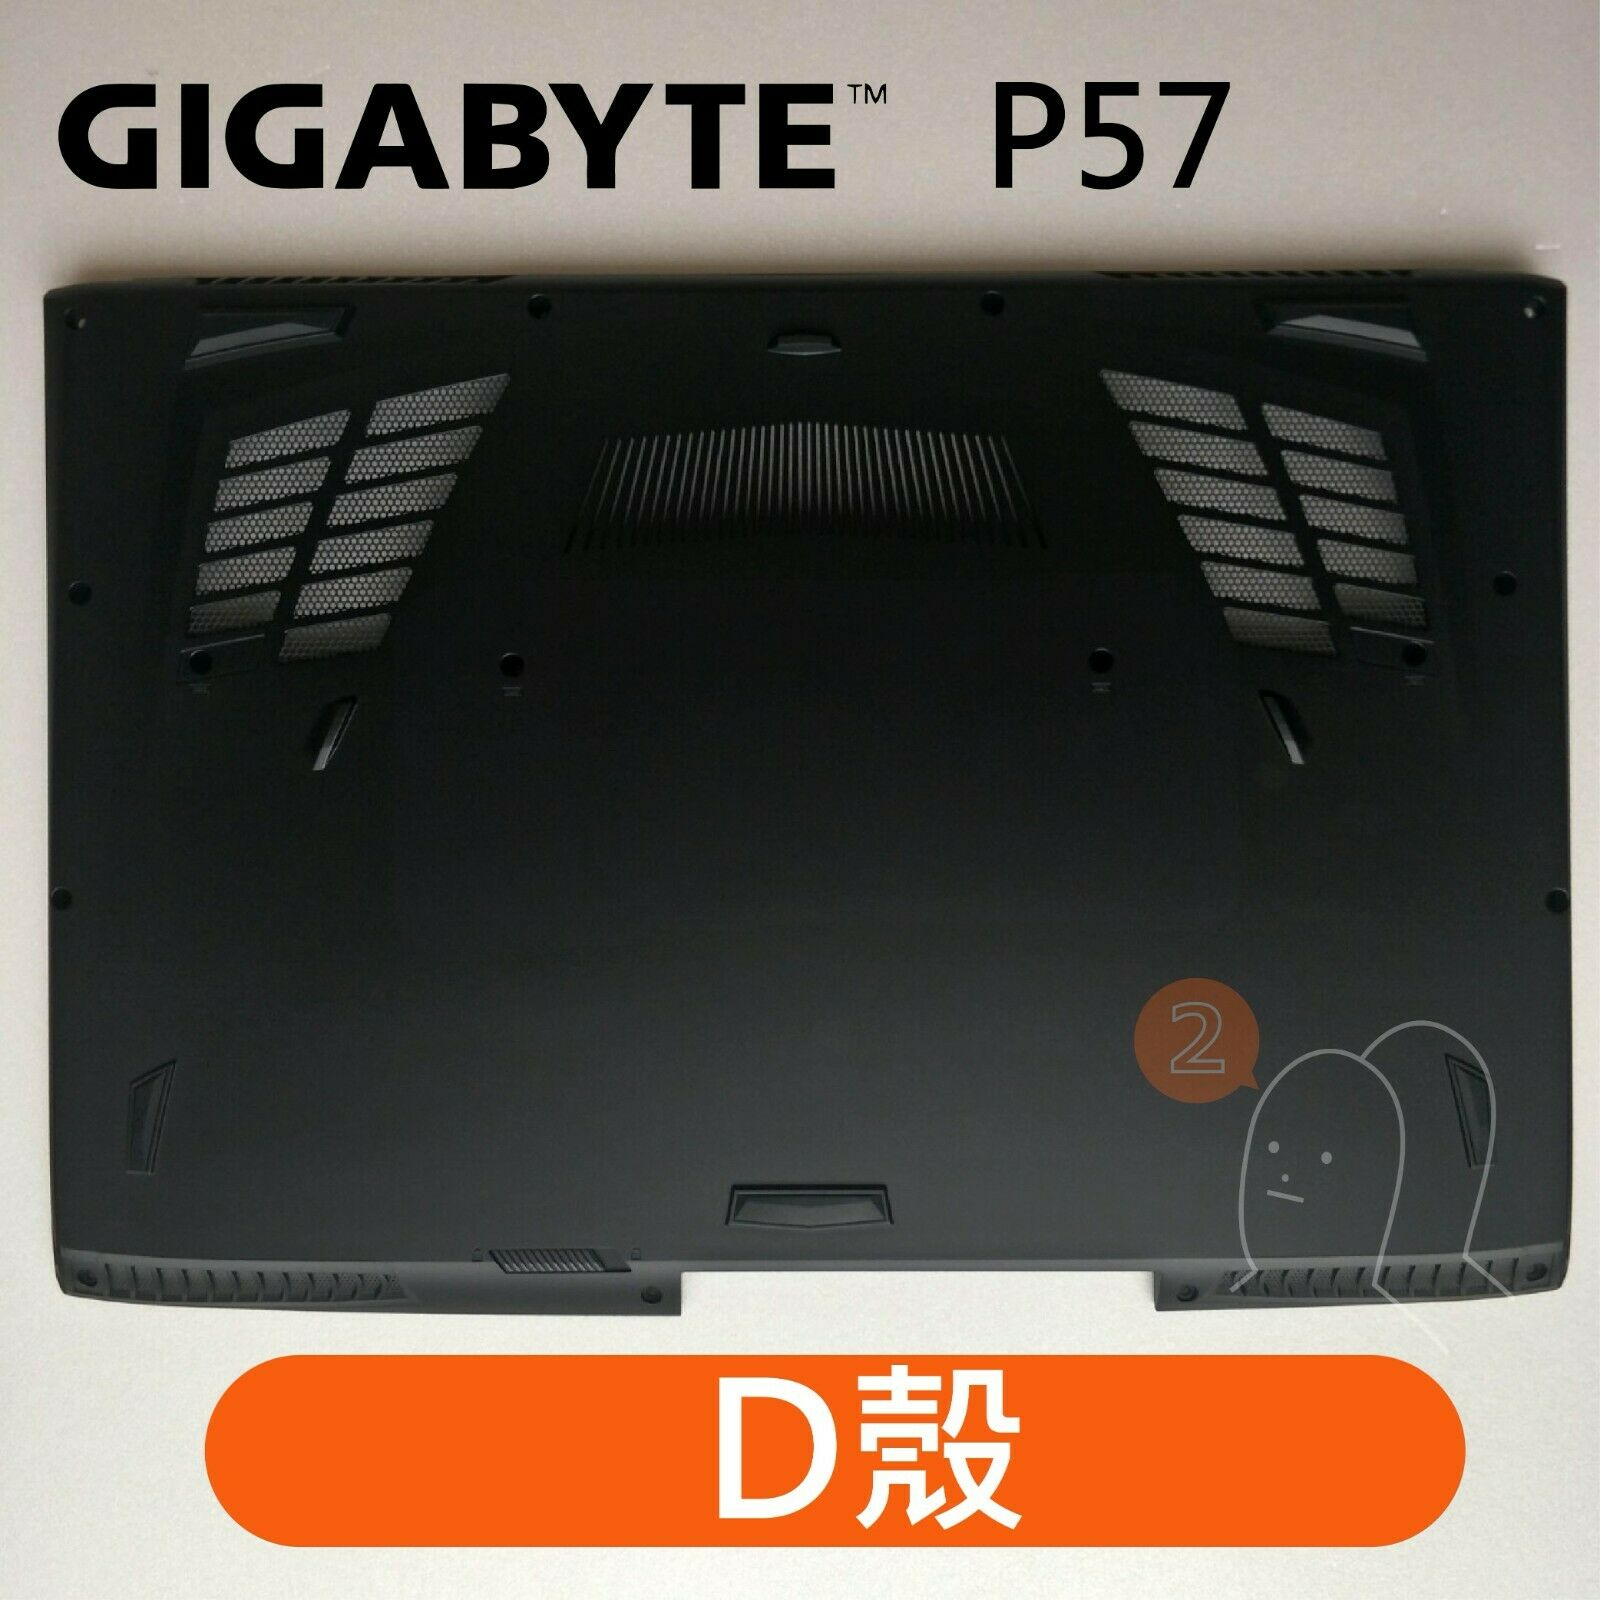 【2p3c】Replacement for GIGABYTE P57 Laptop LCD Cover : D(Bottom Base)